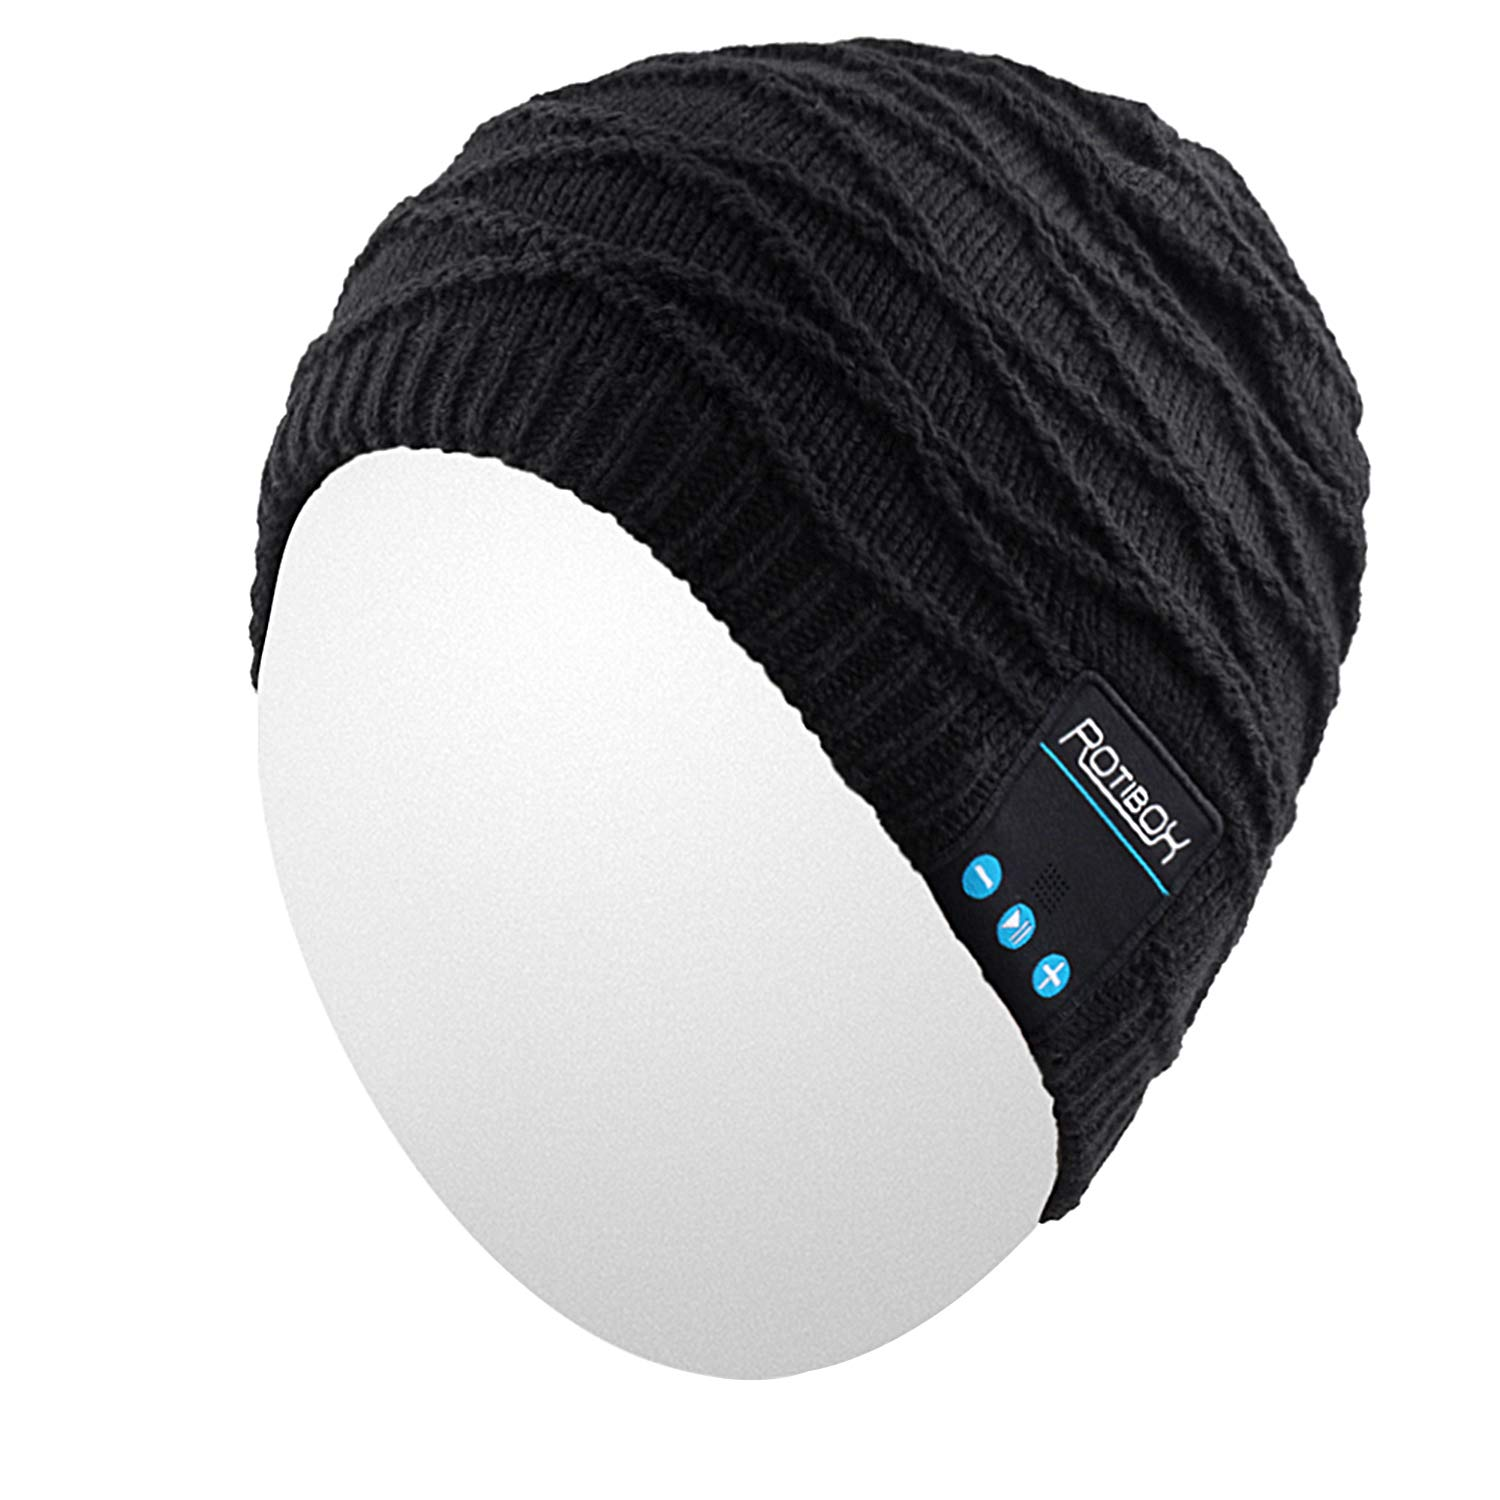 Qshell Wireless Bluetooth Beanie Hat Headphone Headset Music Audio Cap for Women Men with Speaker & Mic Hands Free Outdoor Sports,Compatible with iPhone 6s/6 Plus,Samsung, Black by Qshell